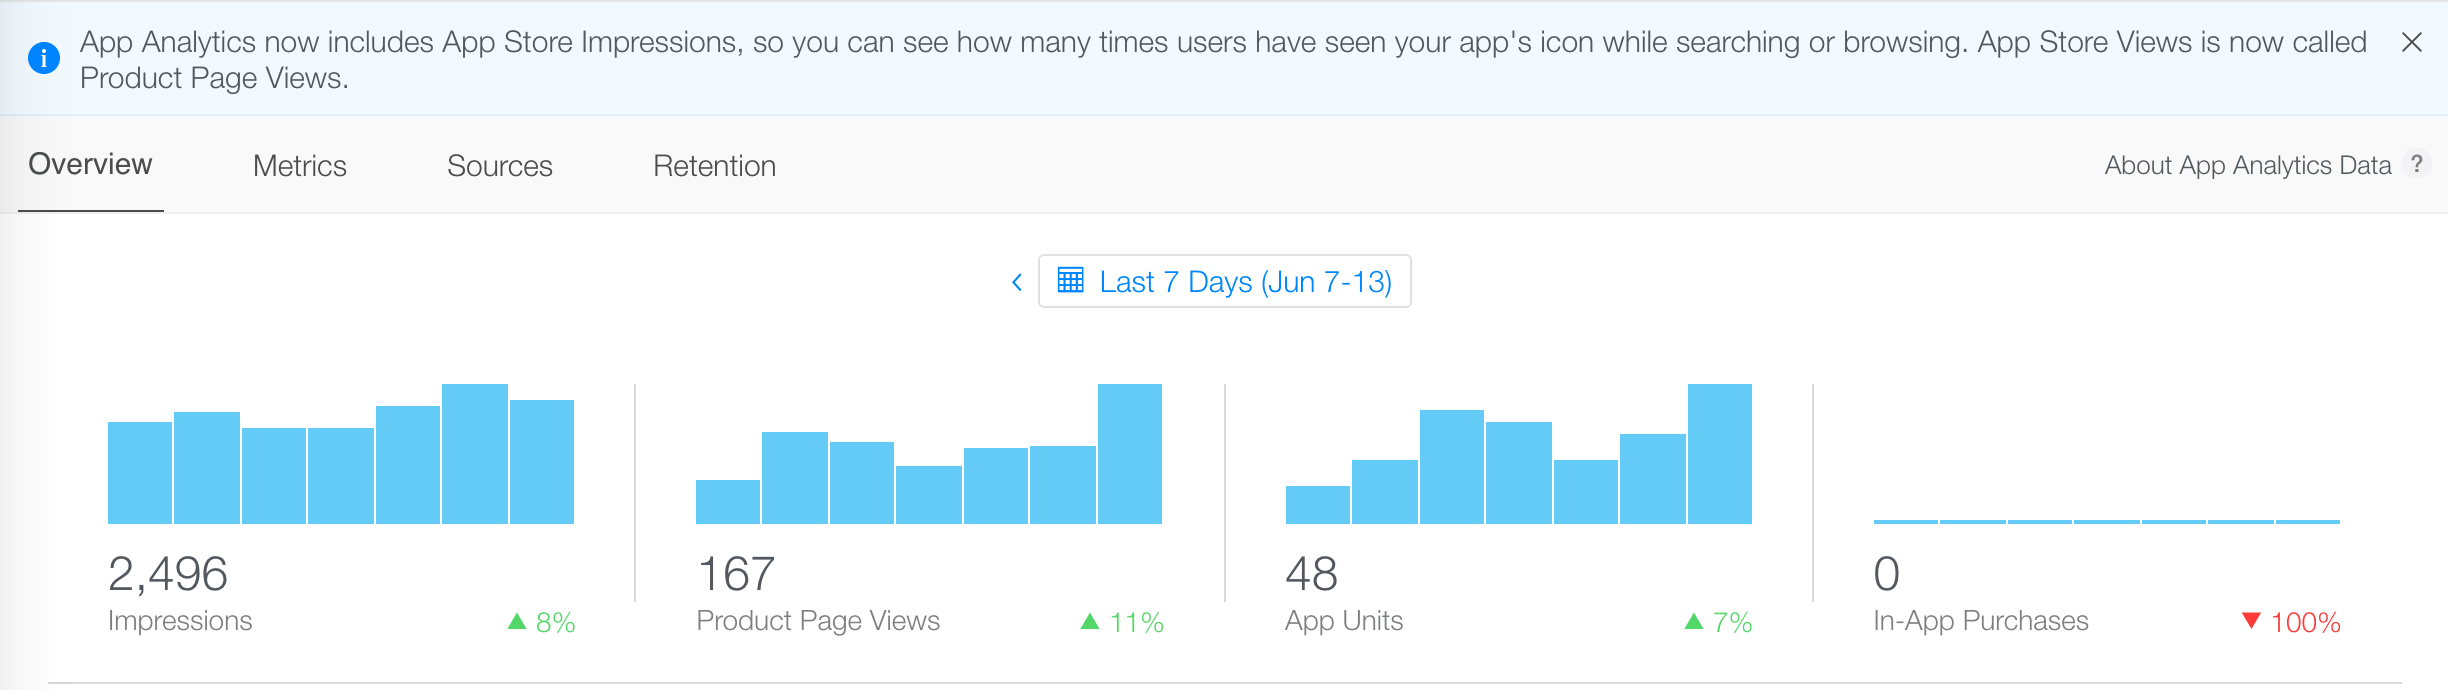 iTunes Connect App Analytics Impressions and Product Page